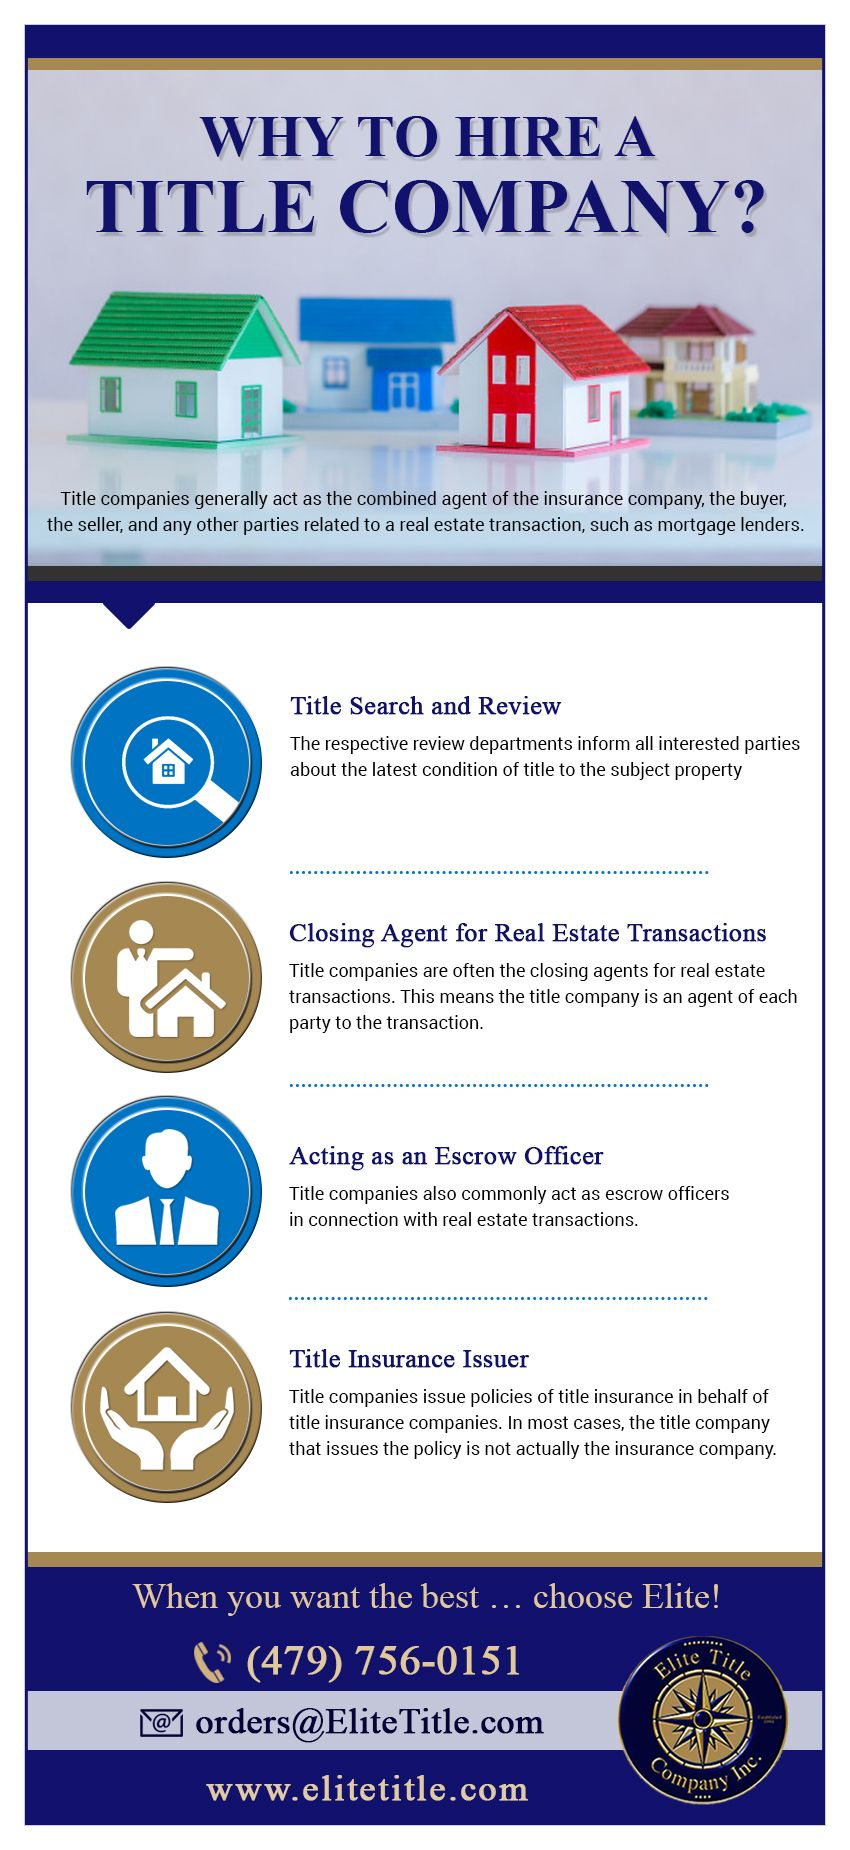 Title Companies Are A One Stop Solution That Work As An Agent For